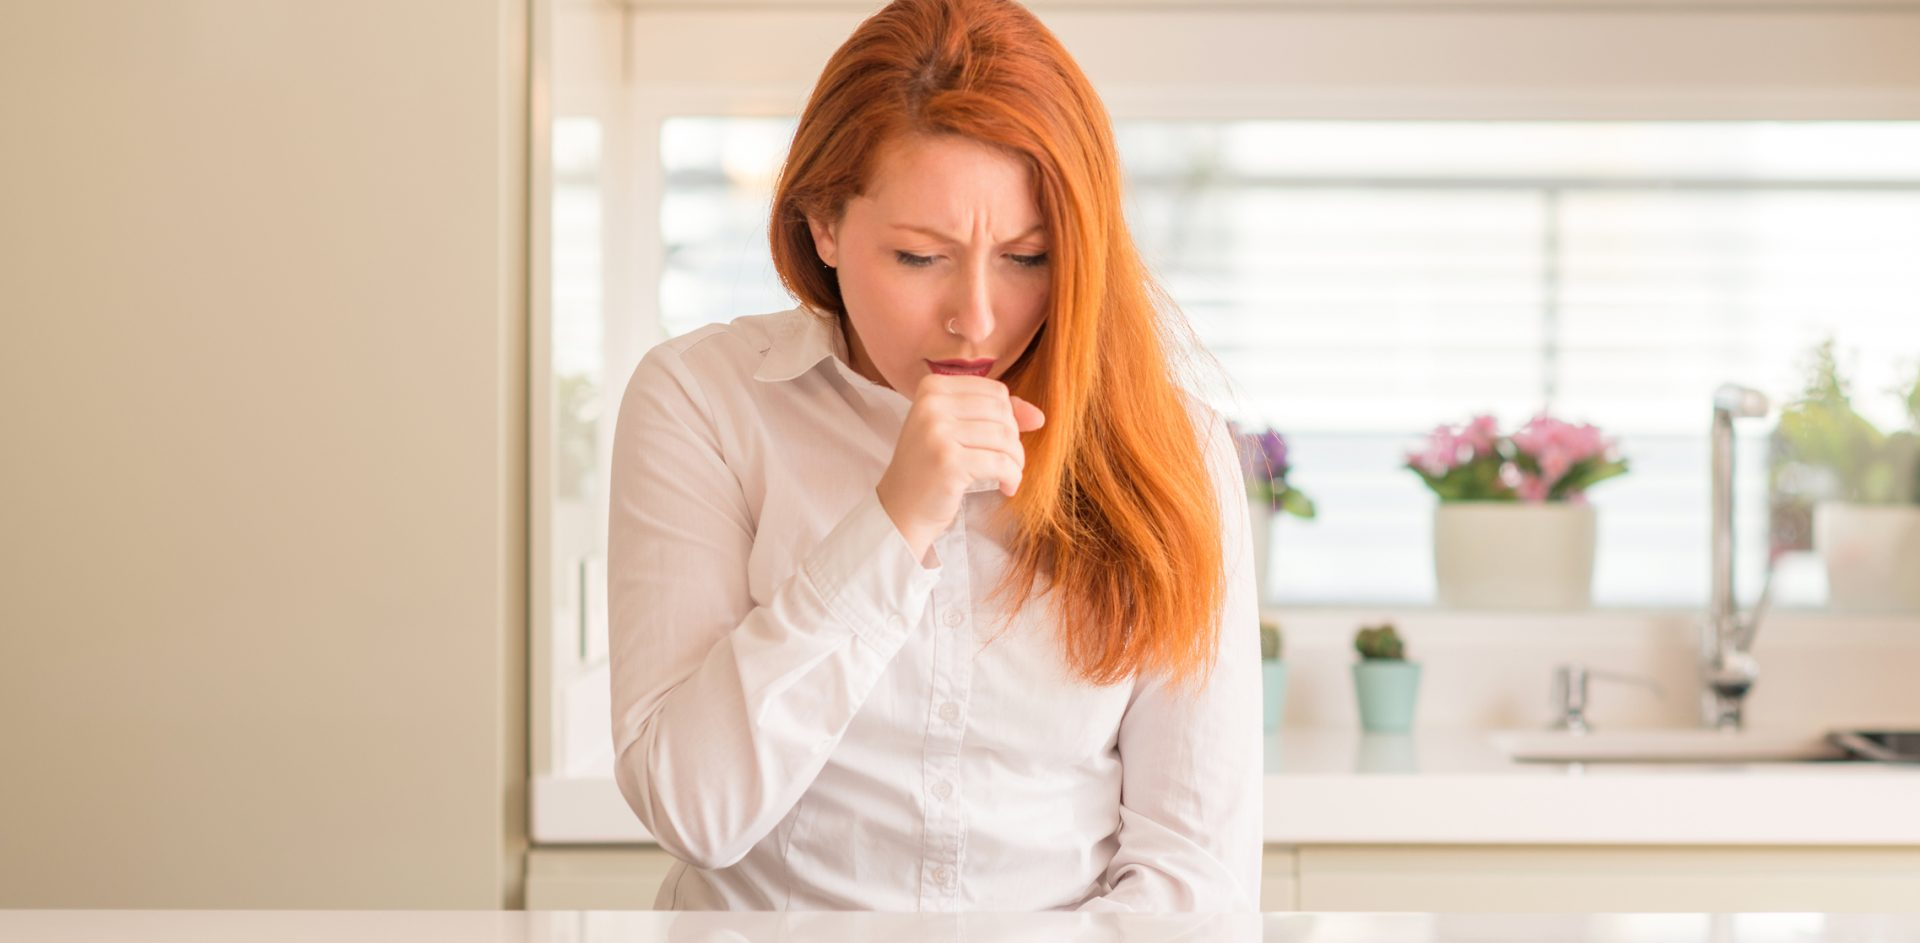 Redhead woman at kitchen feeling unwell and coughing as symptom for cold or bronchitis. Healthcare concept.